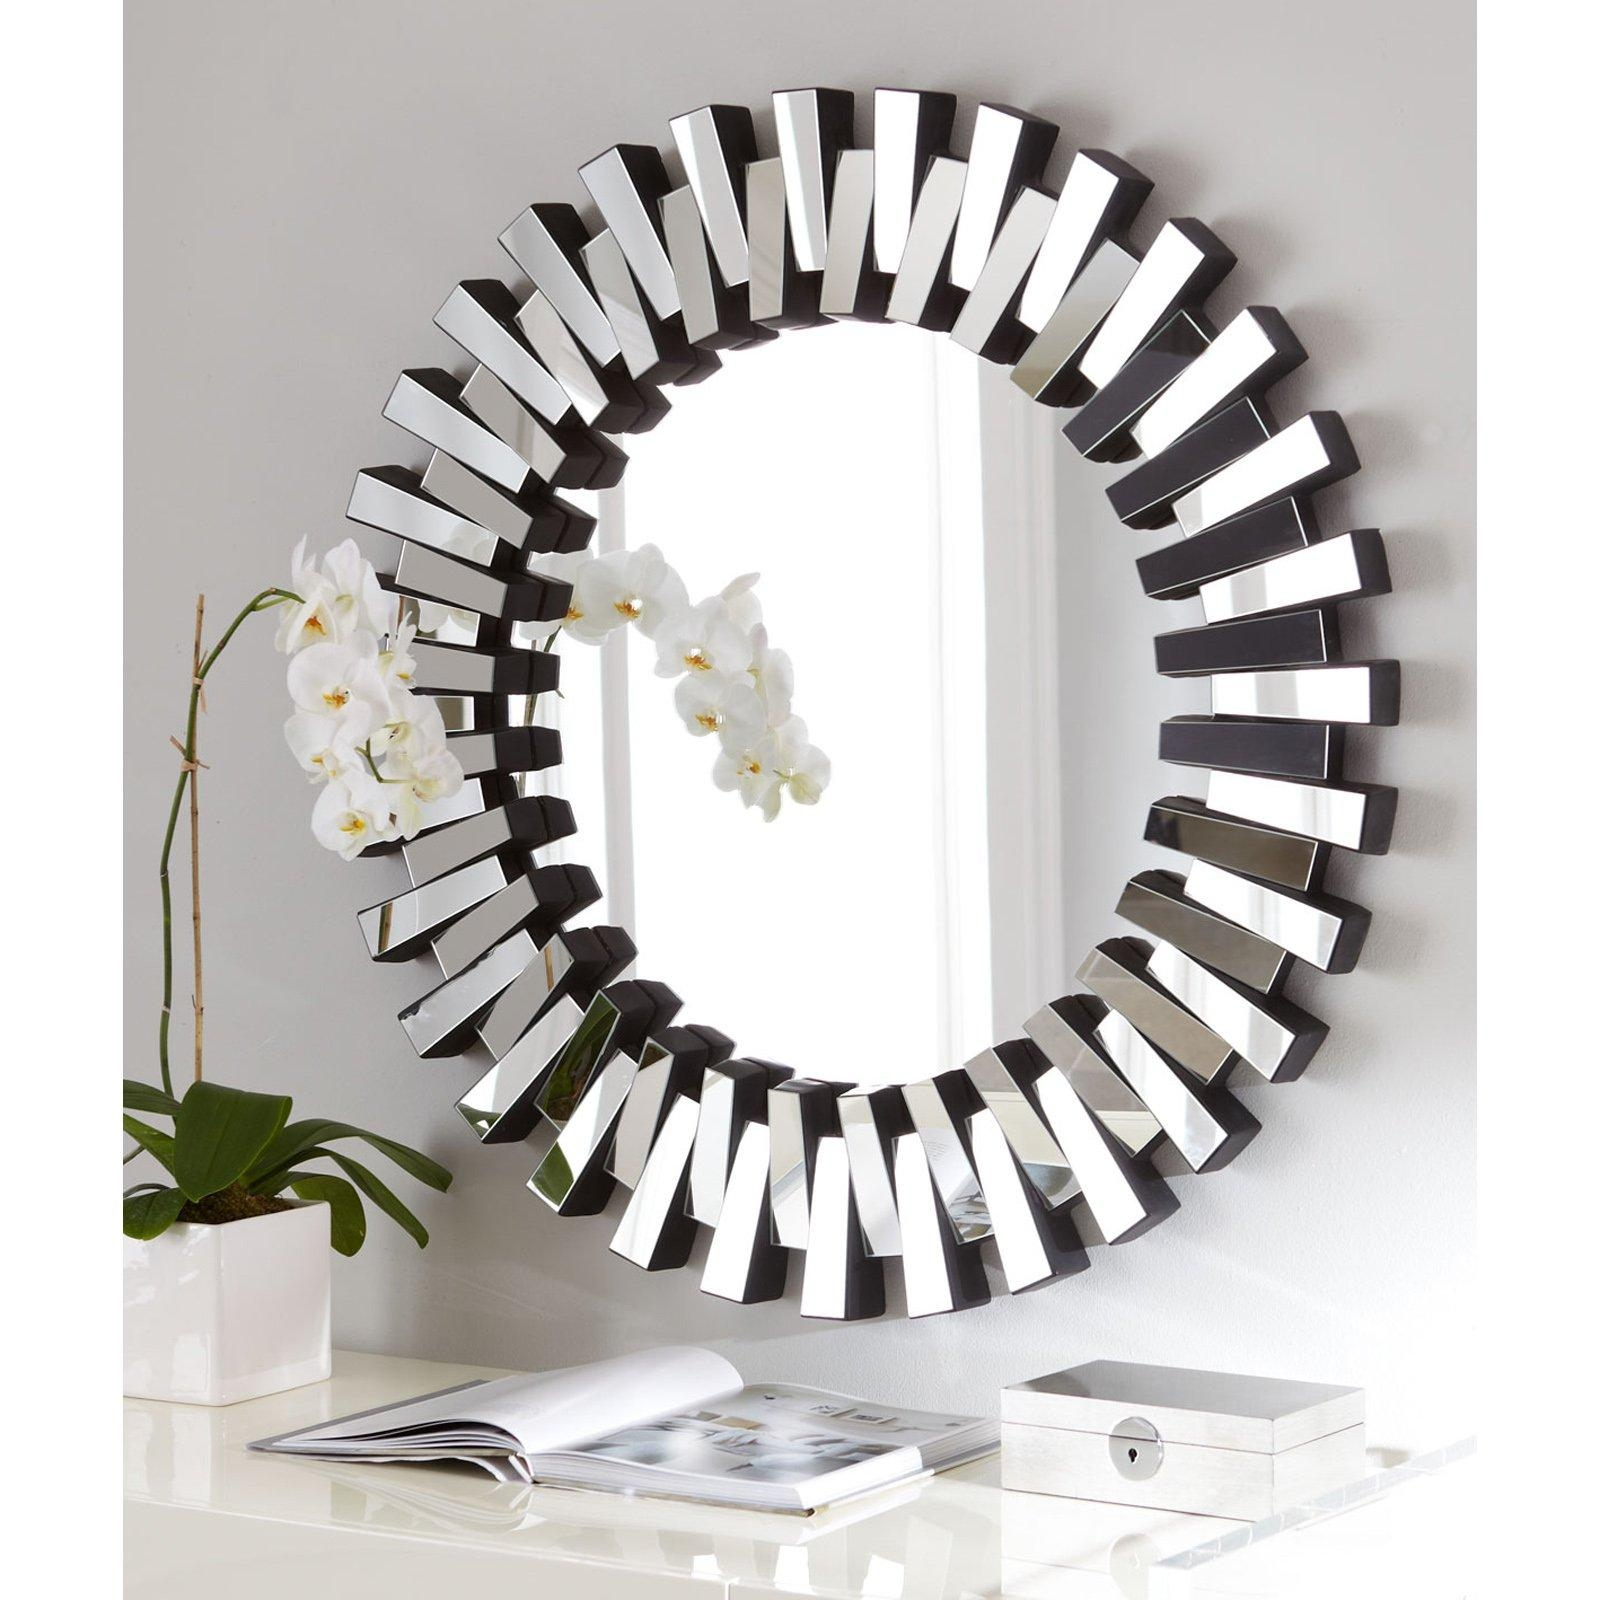 20 Collection of Decorative Round Mirrors | Mirror Ideas